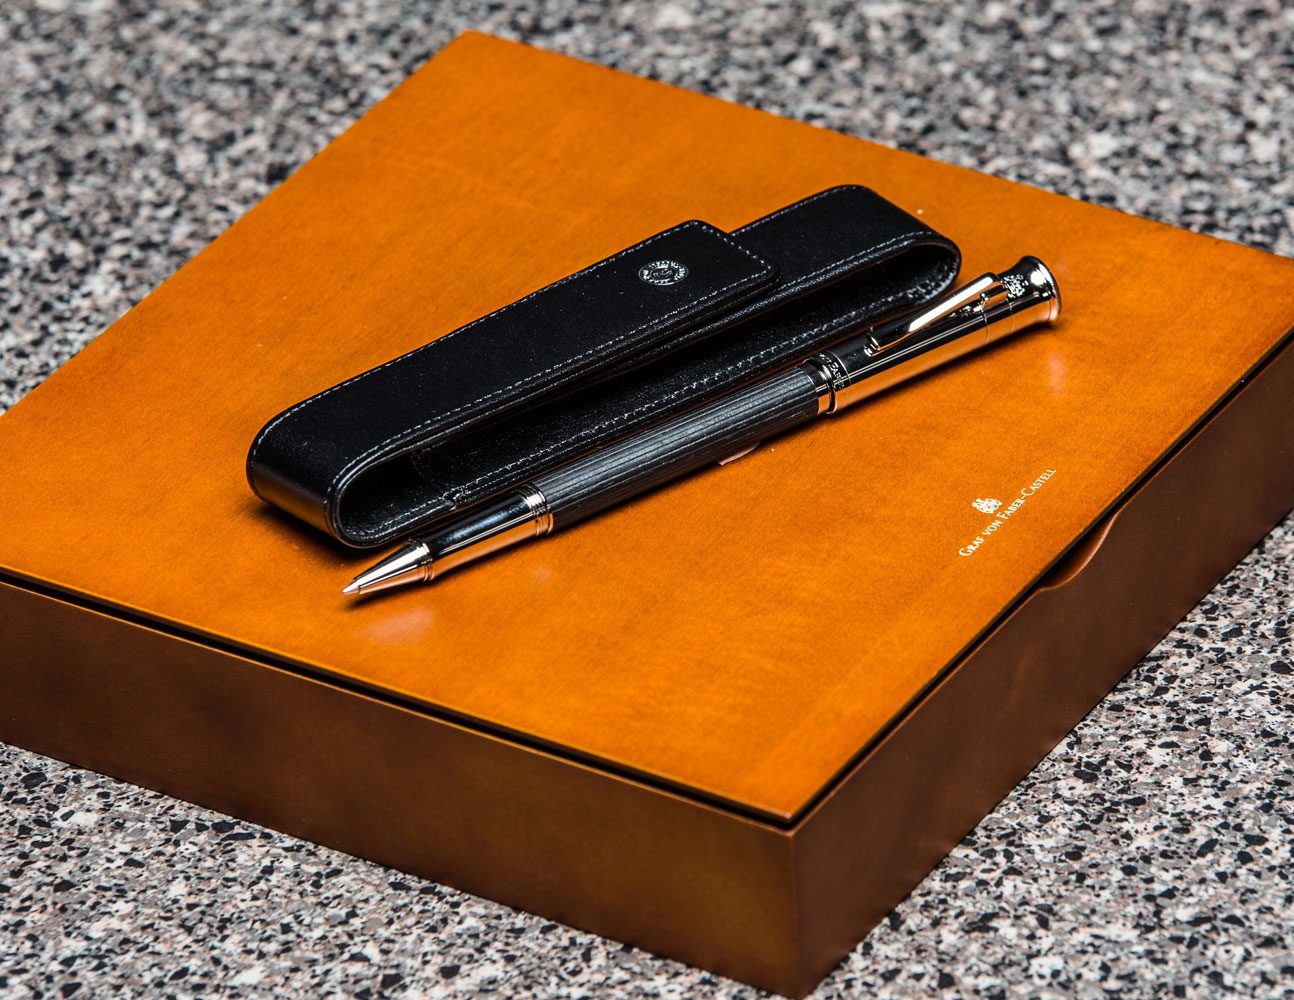 Gvfc Ebony Rollerball/Black Leather Case Set